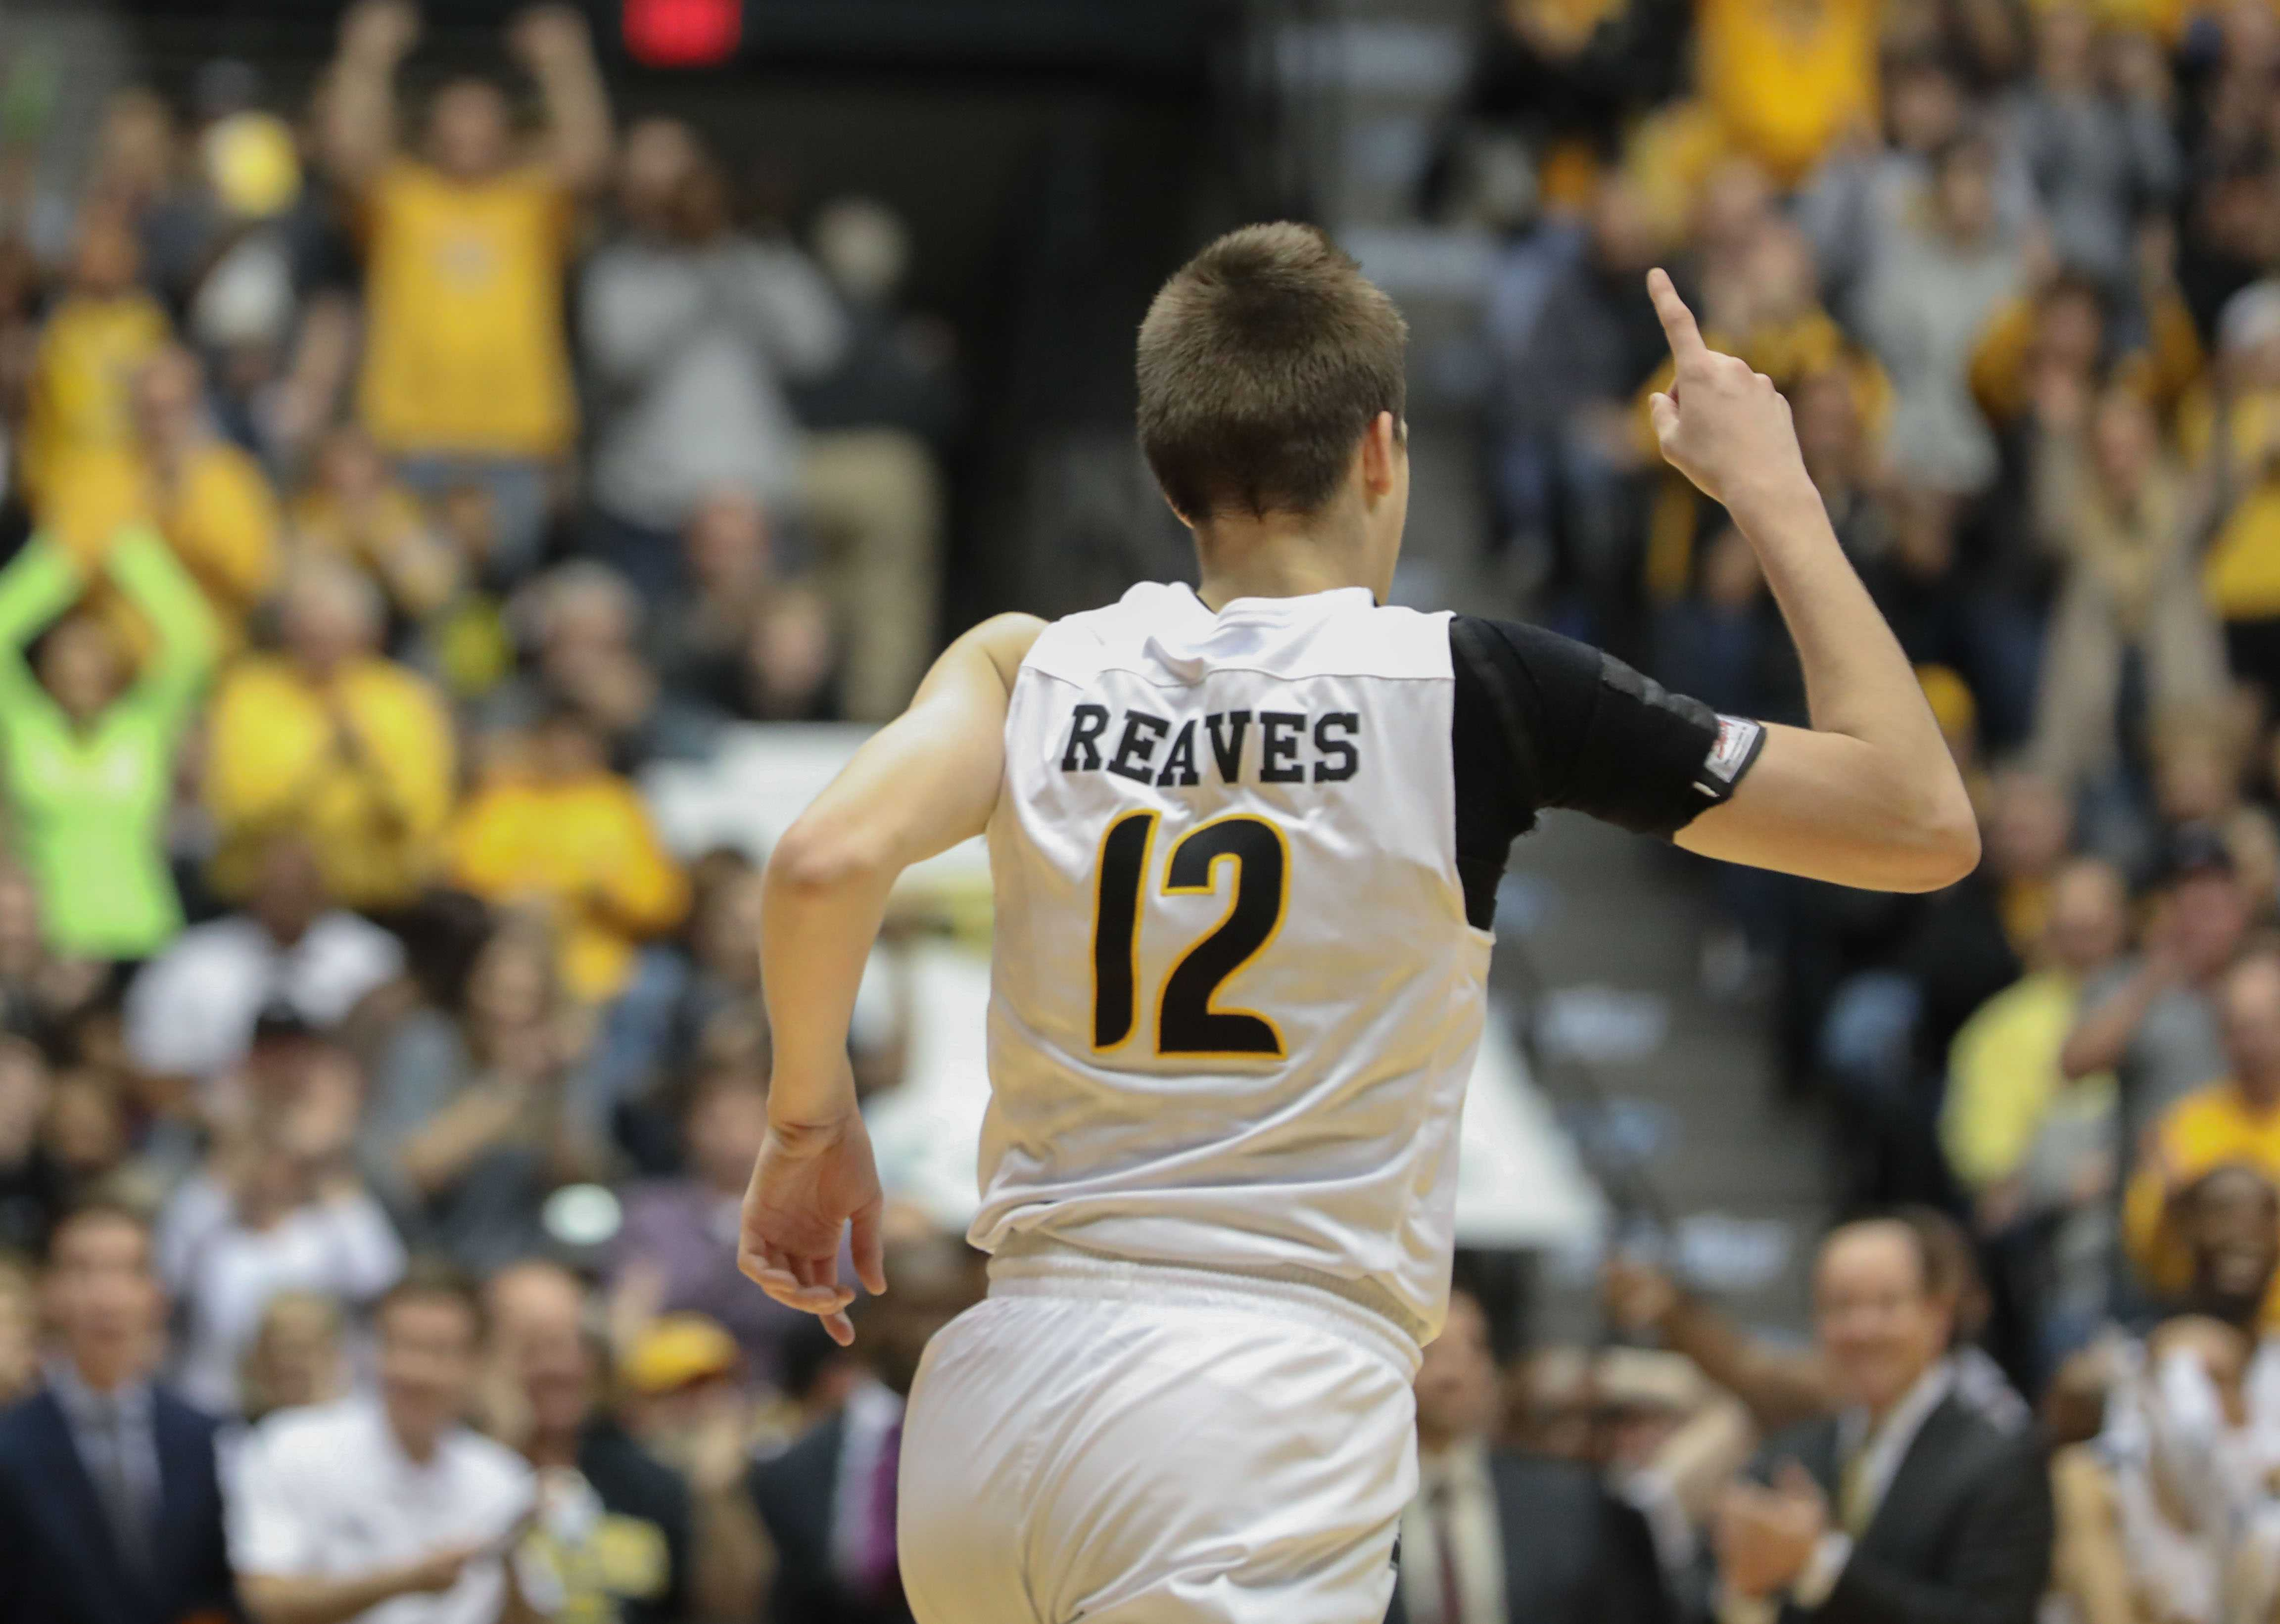 Wichita+State+guard+Austin+Reaves+%2812%29+celebrates+a+dunk+during+the+Shockers+win+over+Indiana+State+on+Saturday+afternoon.+Reaves+scored+11+points+during+the+victory.+%28Jan.+21%2C+2017%29